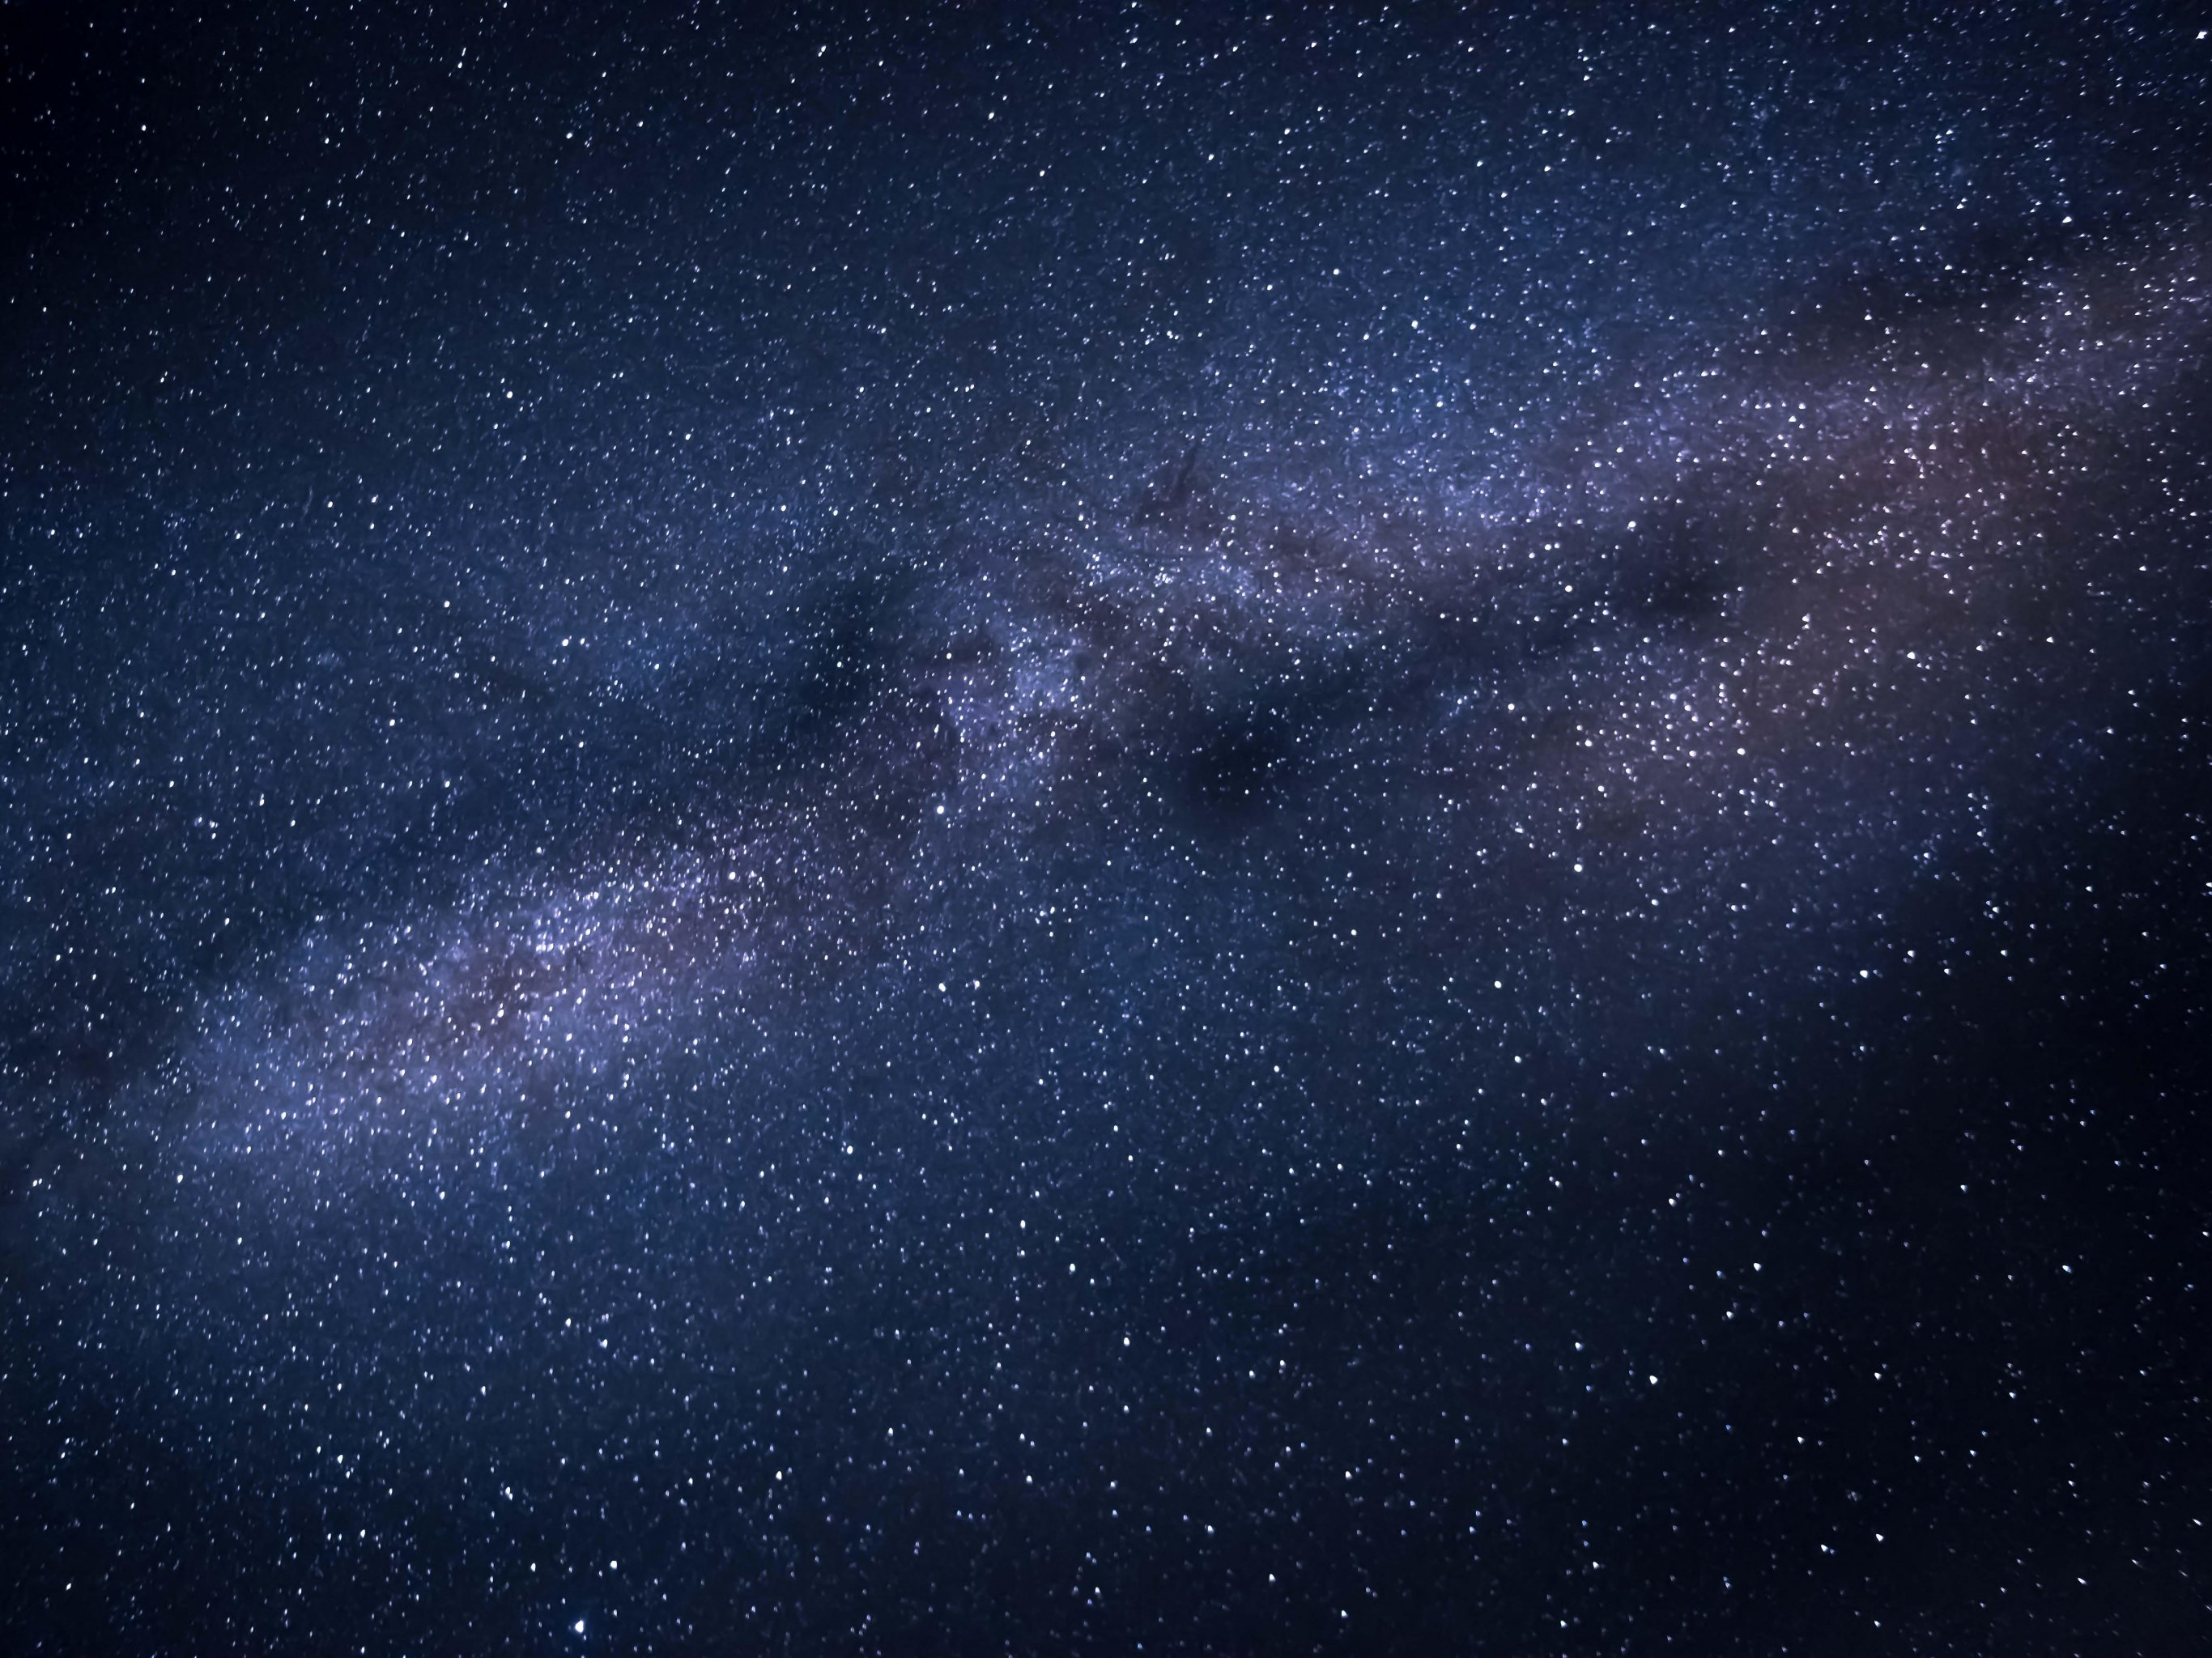 Milky Way Wallpaper iPhone, Android and Desktop Backgrounds